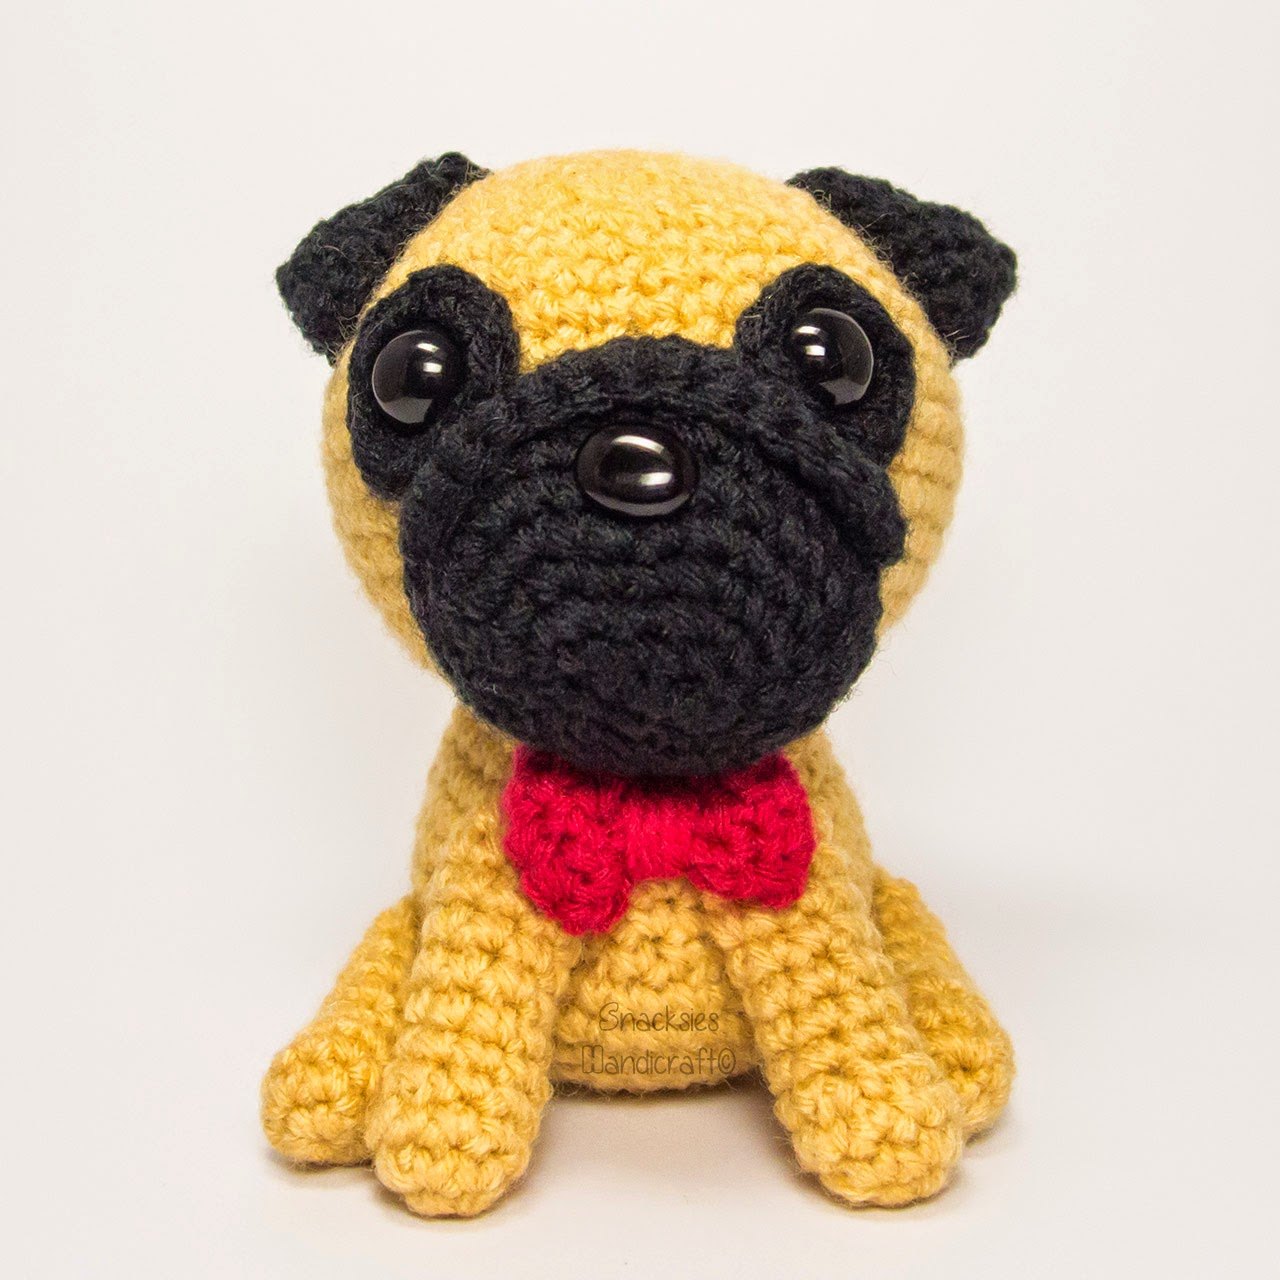 Free Crochet Pattern For Pug Dog : June 2014 ~ Snacksies Handicraft Corner